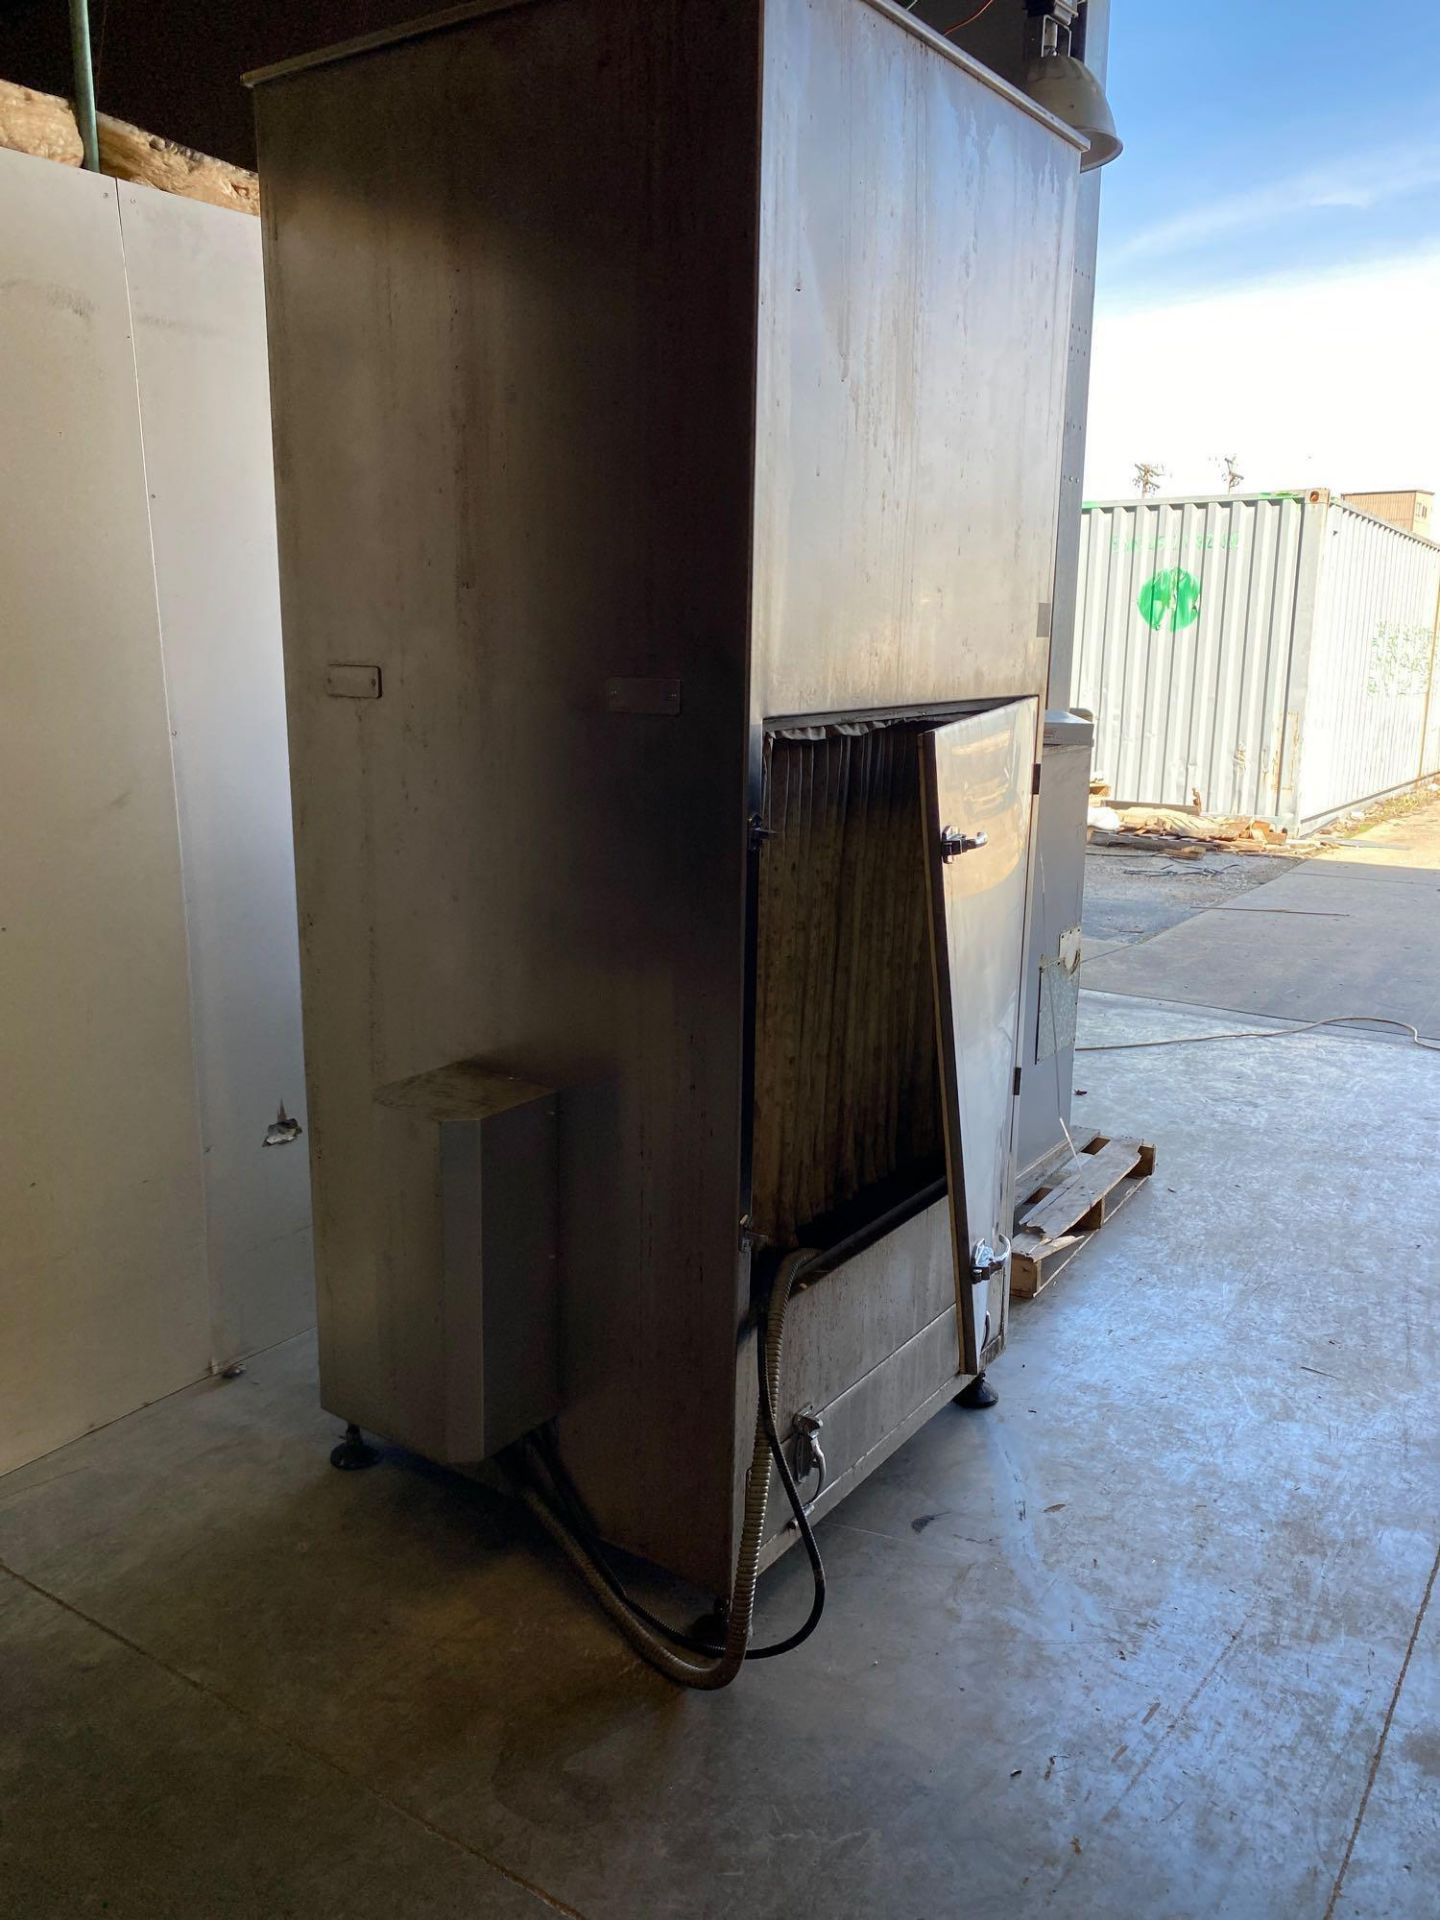 Air Exhaust Dust Collection Cabinet - Goes with Lot 555A - Image 3 of 6